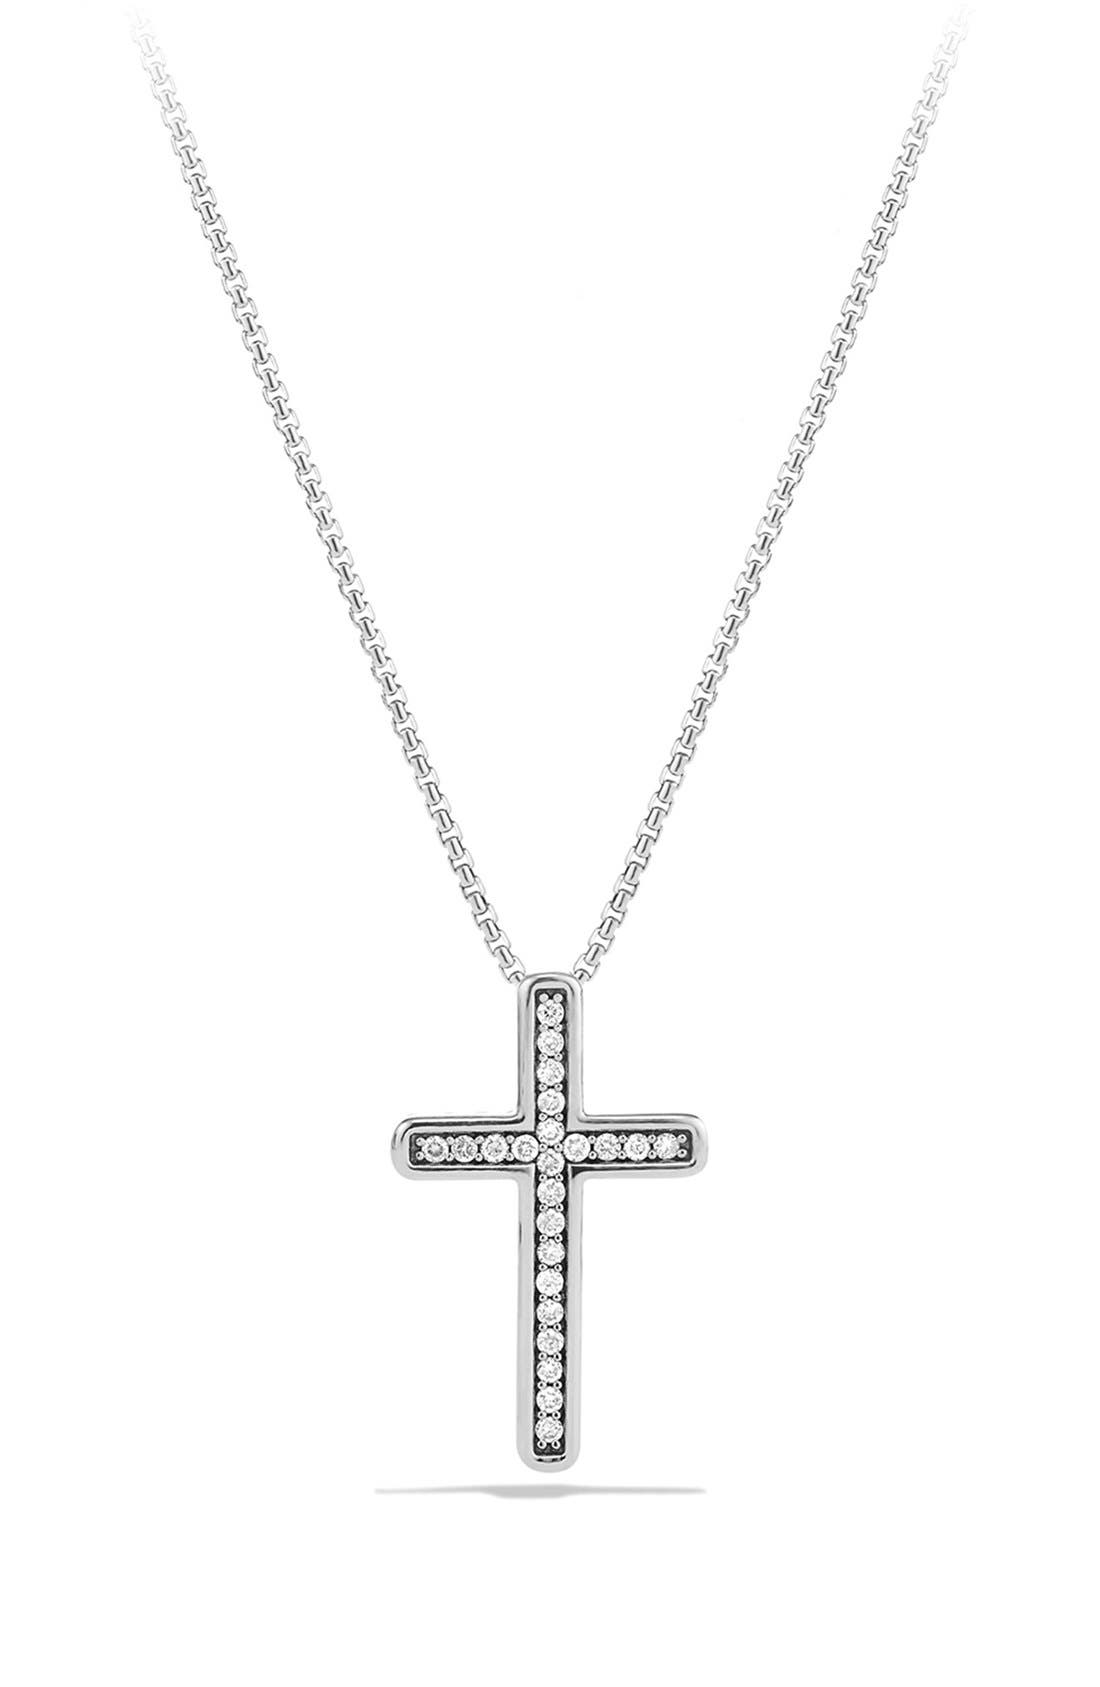 Alternate Image 1 Selected - David Yurman 'Petite Pavé' Cross Necklace with Diamonds